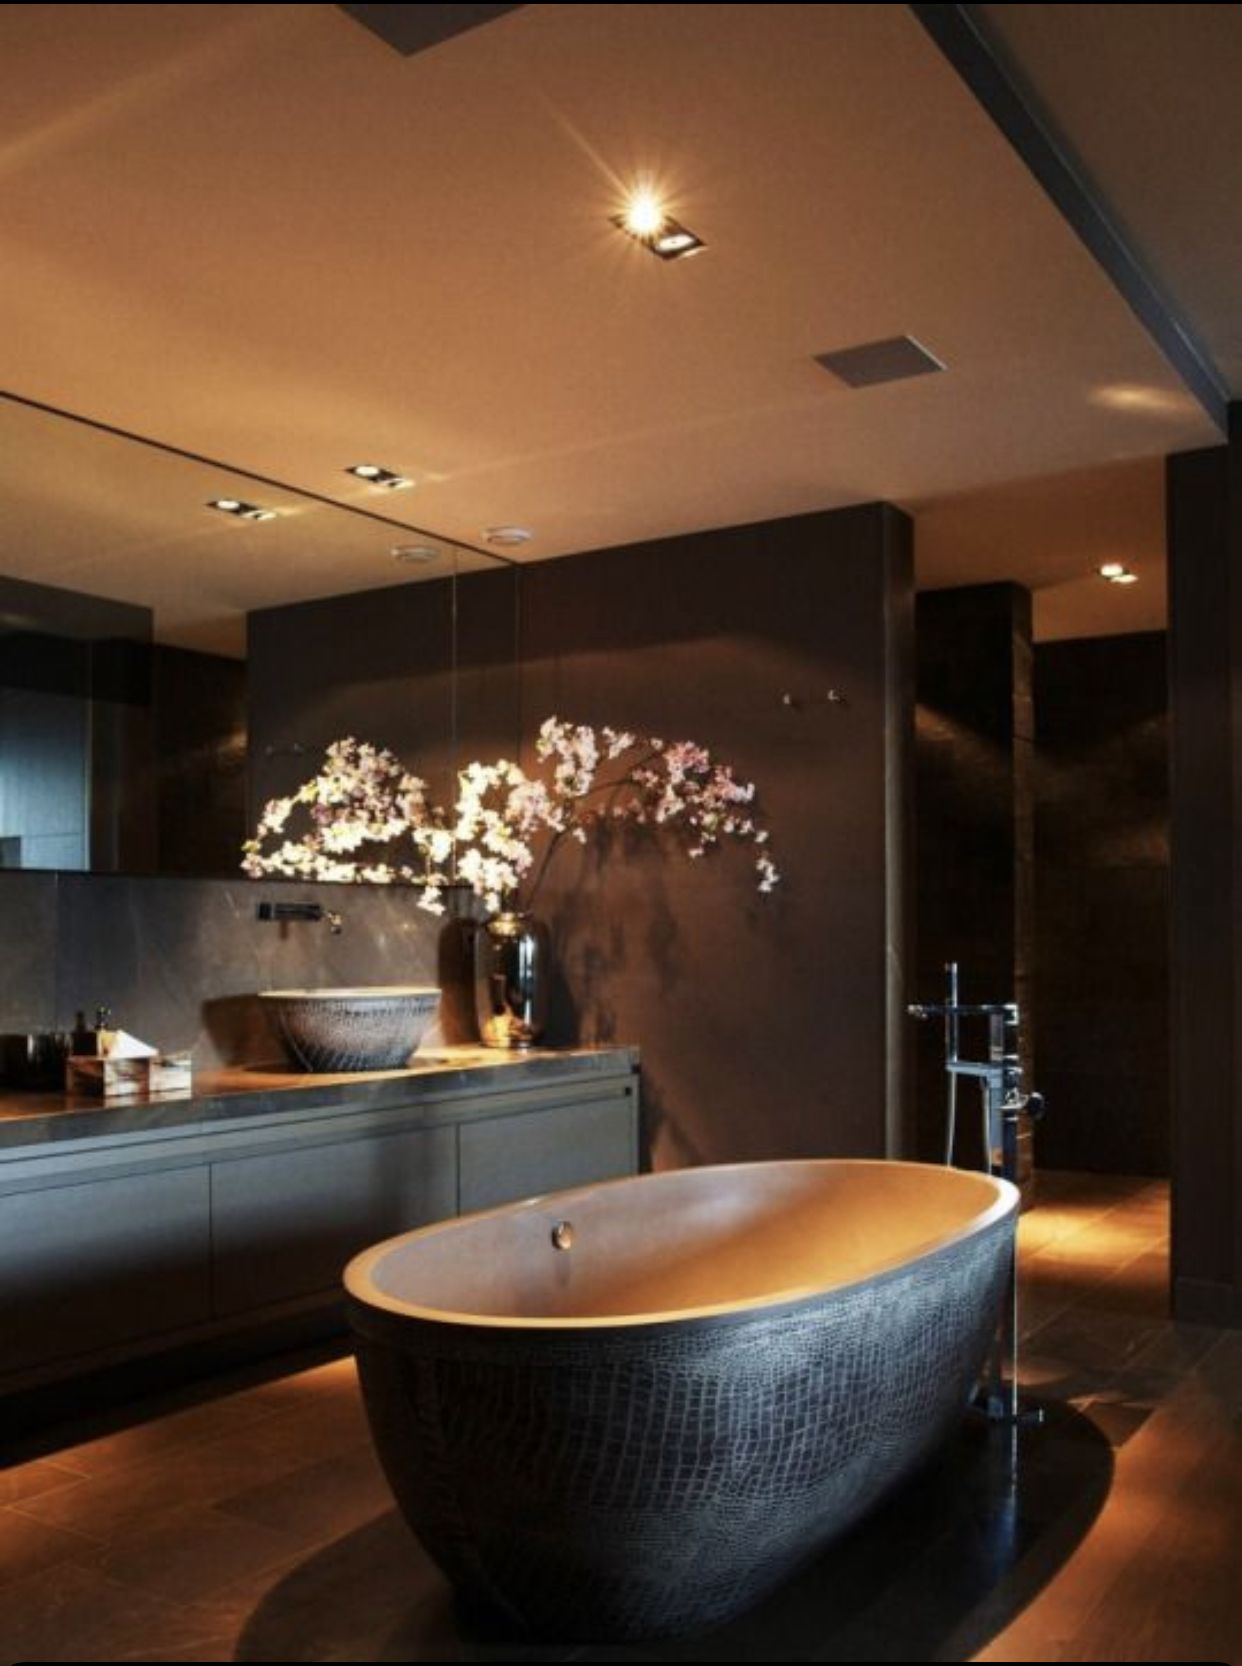 Crazy bathroom luxury in 2020 | Bathroom design luxury ...